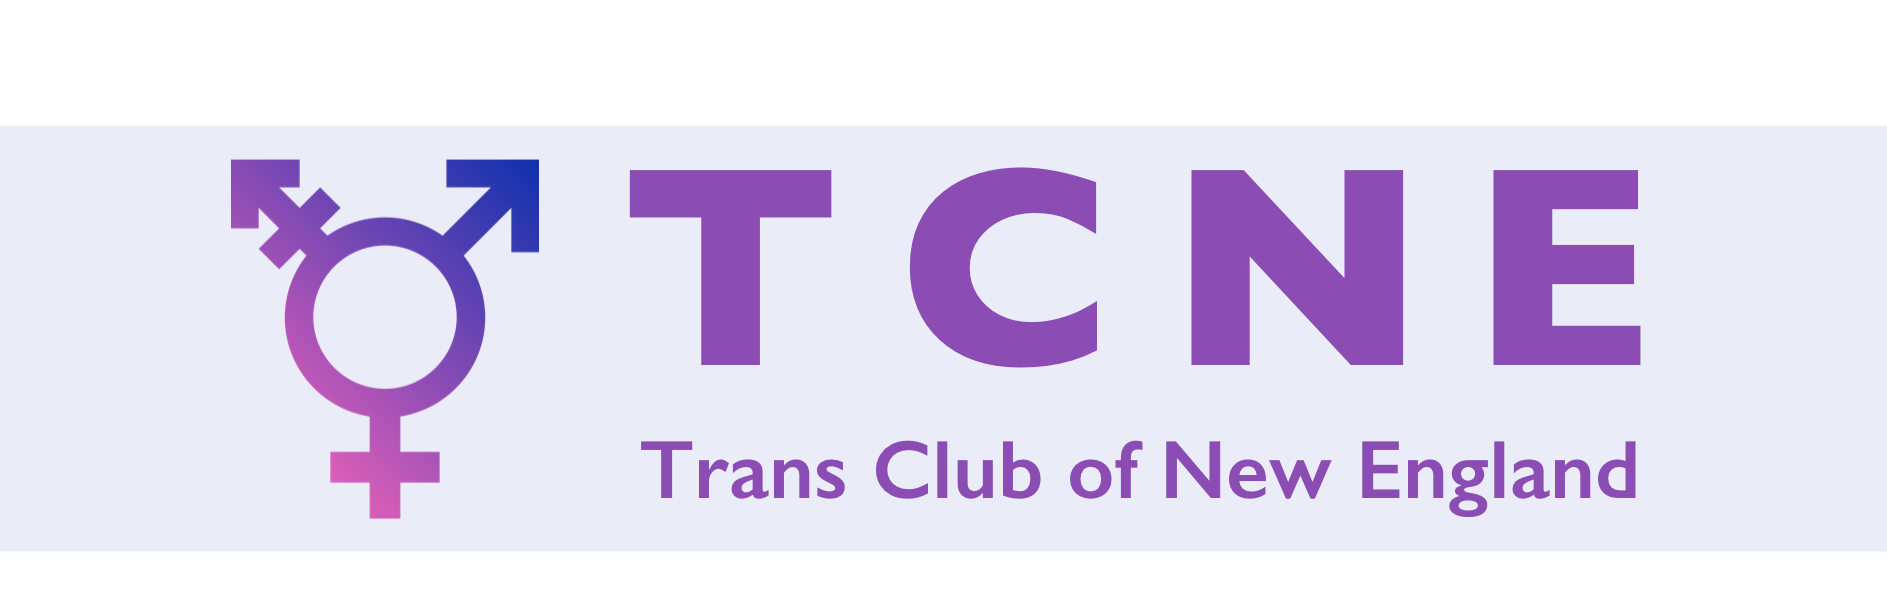 TCNE Trans Club of New England